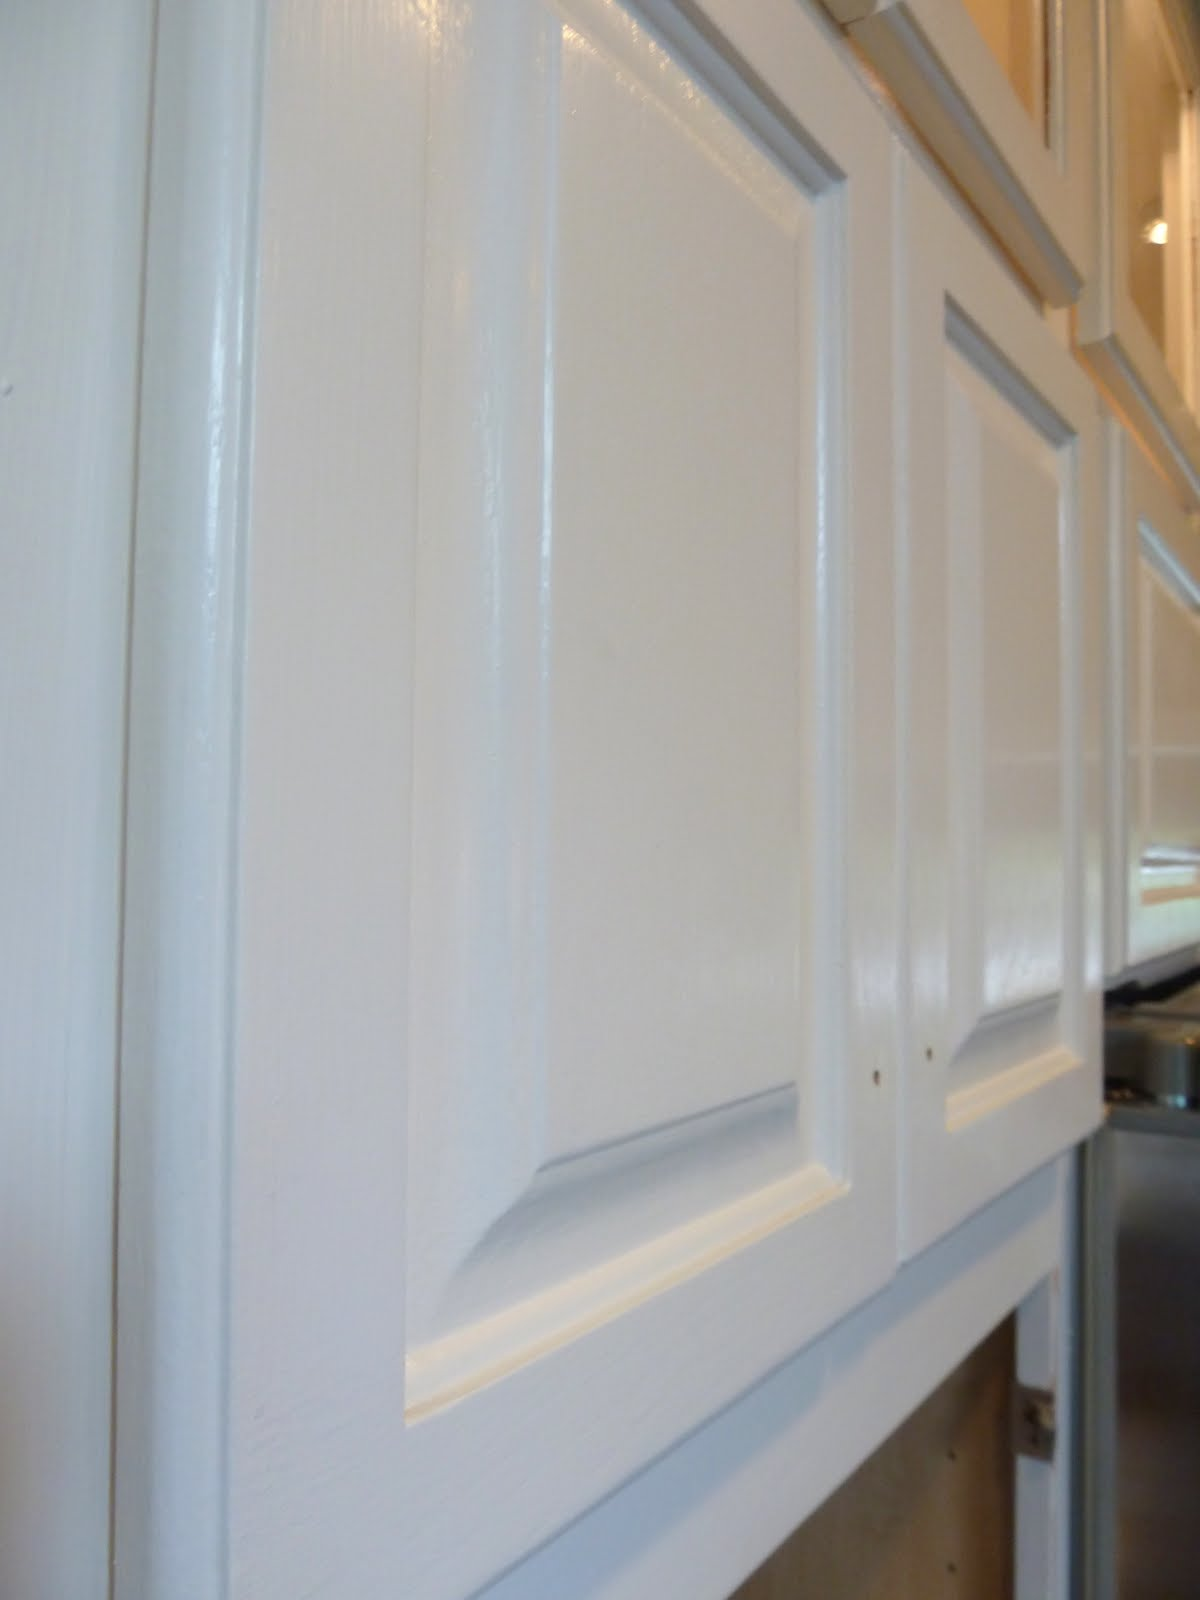 Distressed Kitchen Cabinets: How To Distress Your Kitchen Cabinets ...